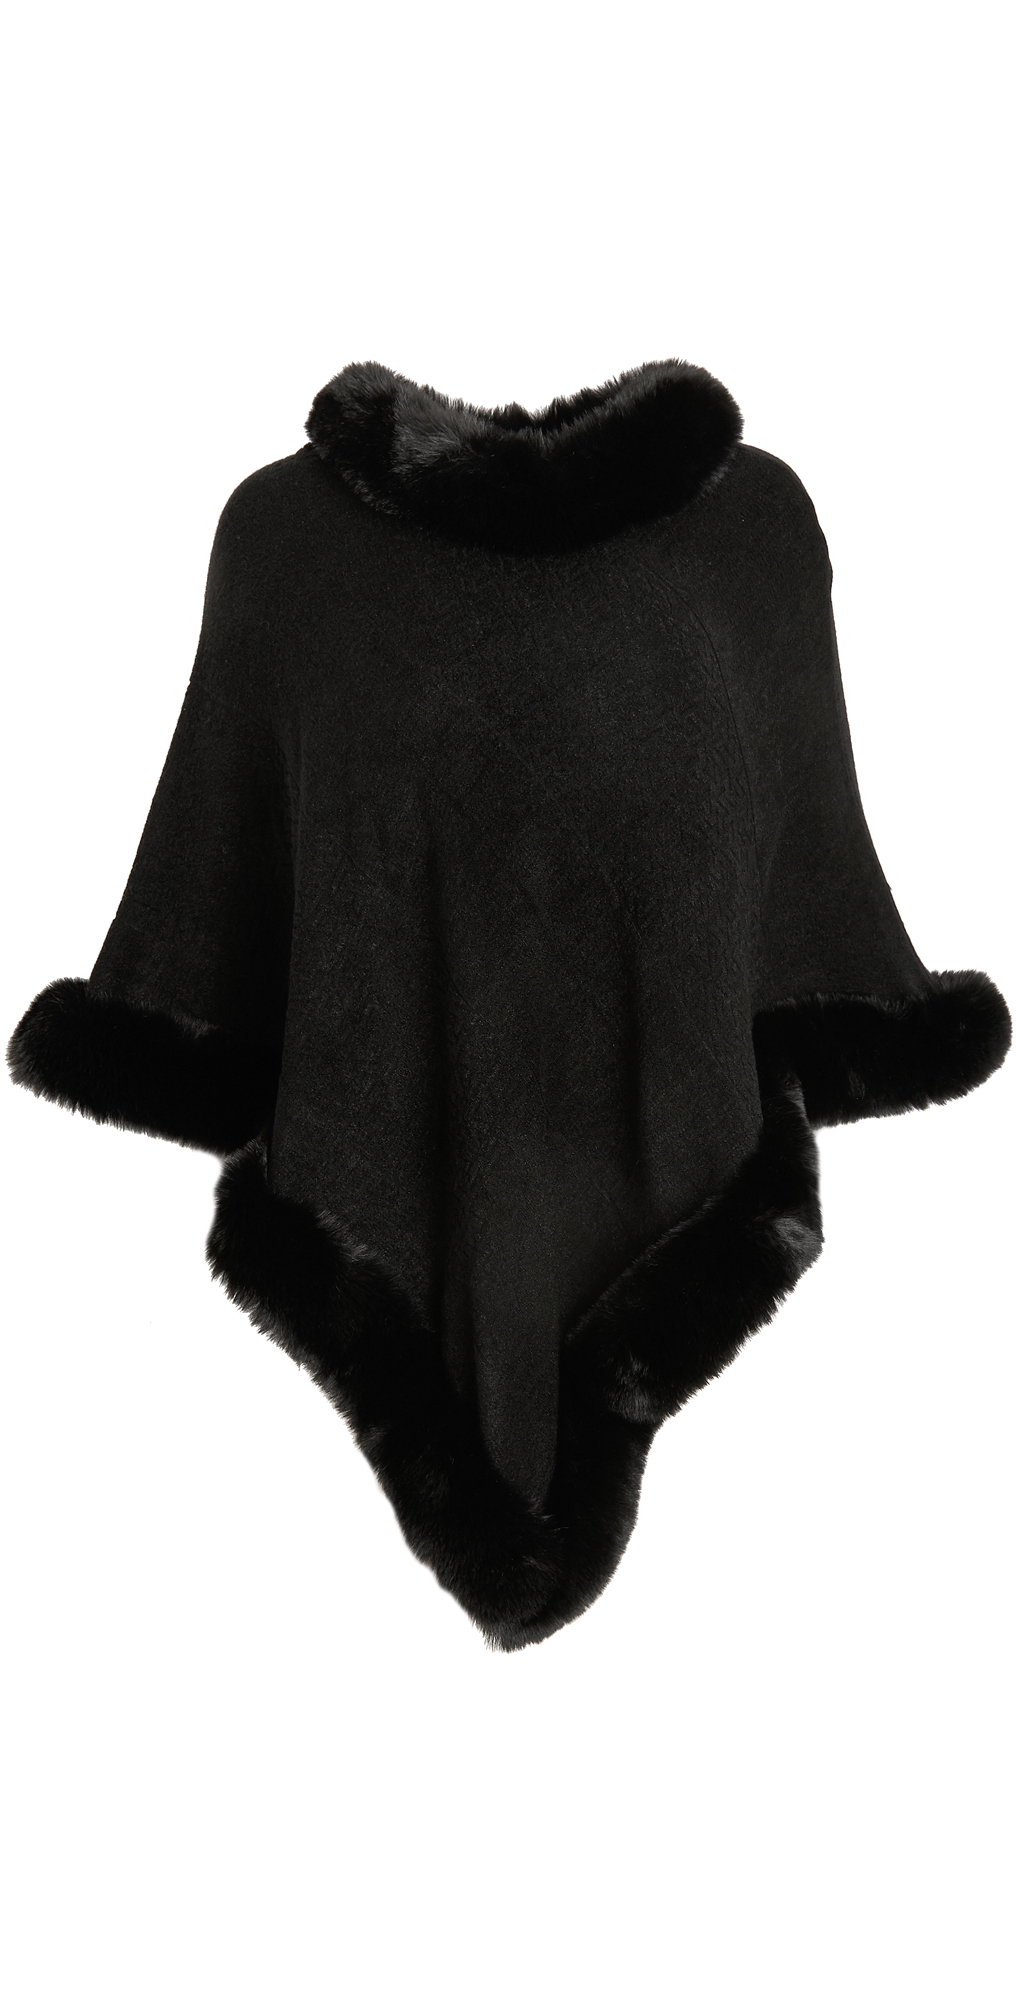 Adrienne Landau Faux Fur Knit Cape